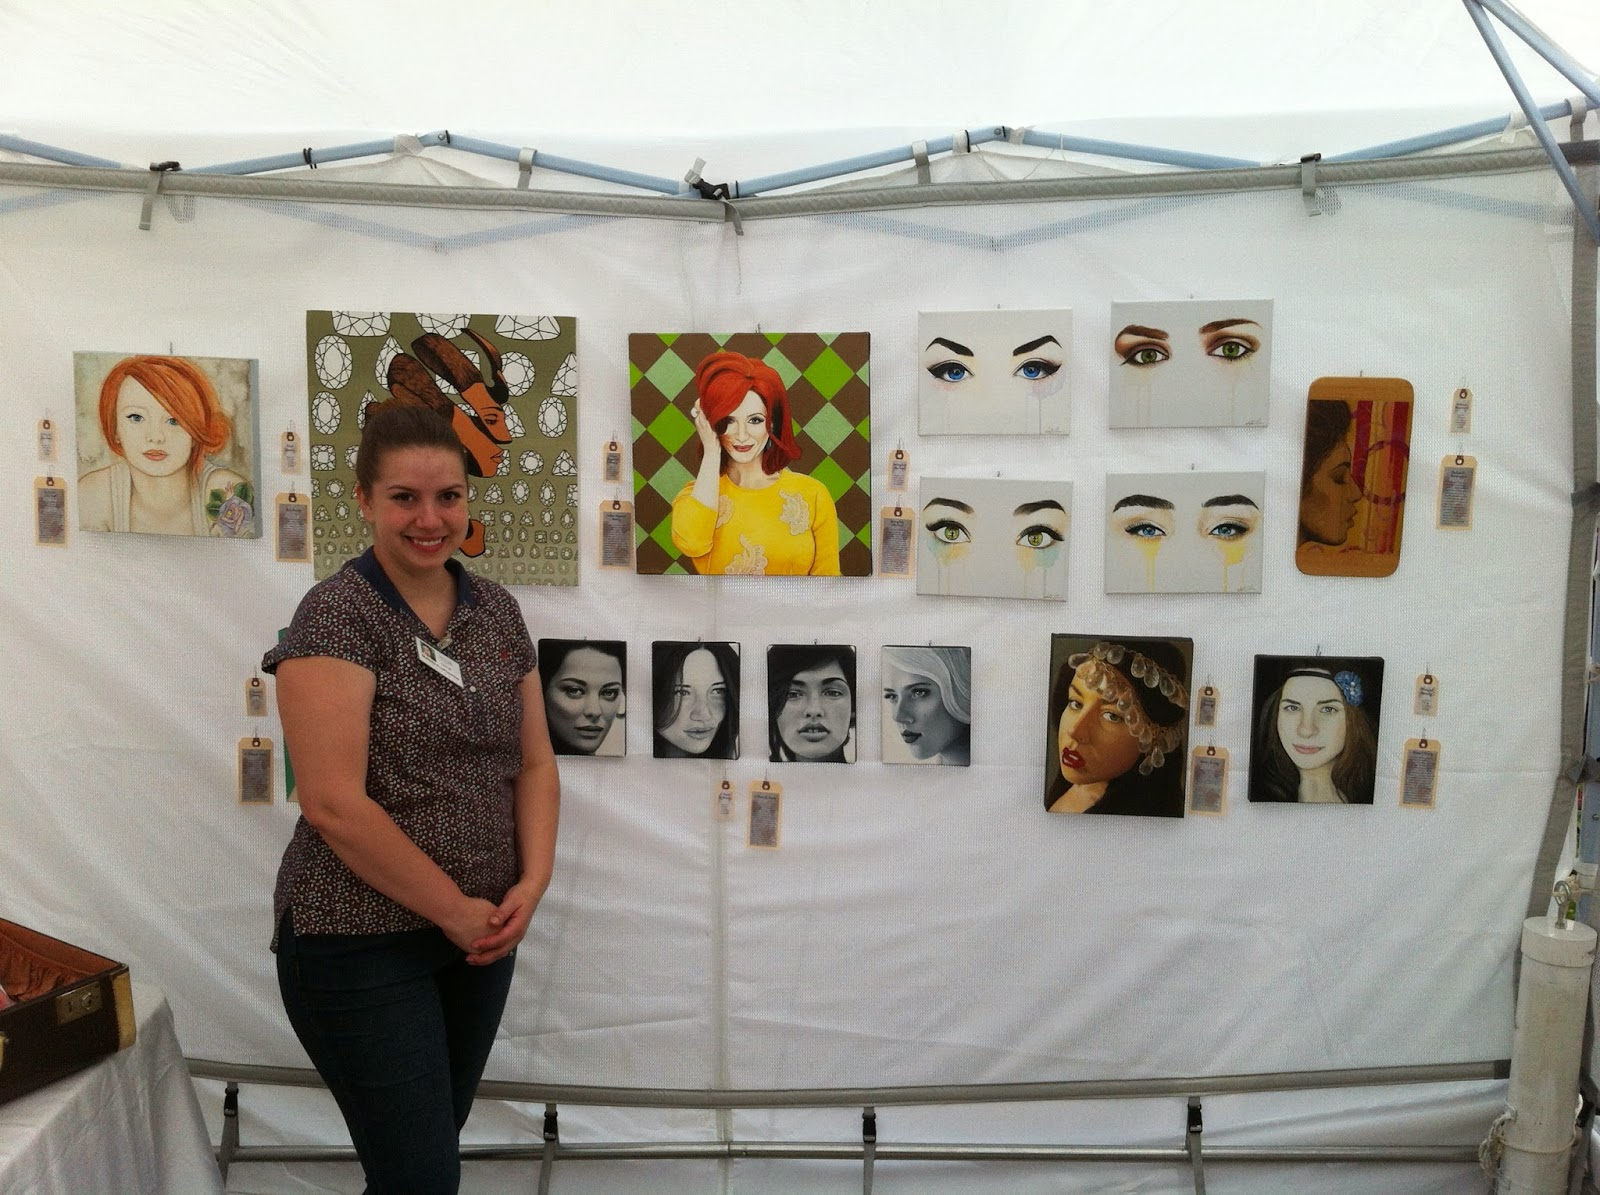 art walk north, artists network, north york art festival, toronto art, malinda prudhomme, portrait artist, awn, portrait painting, beauty art